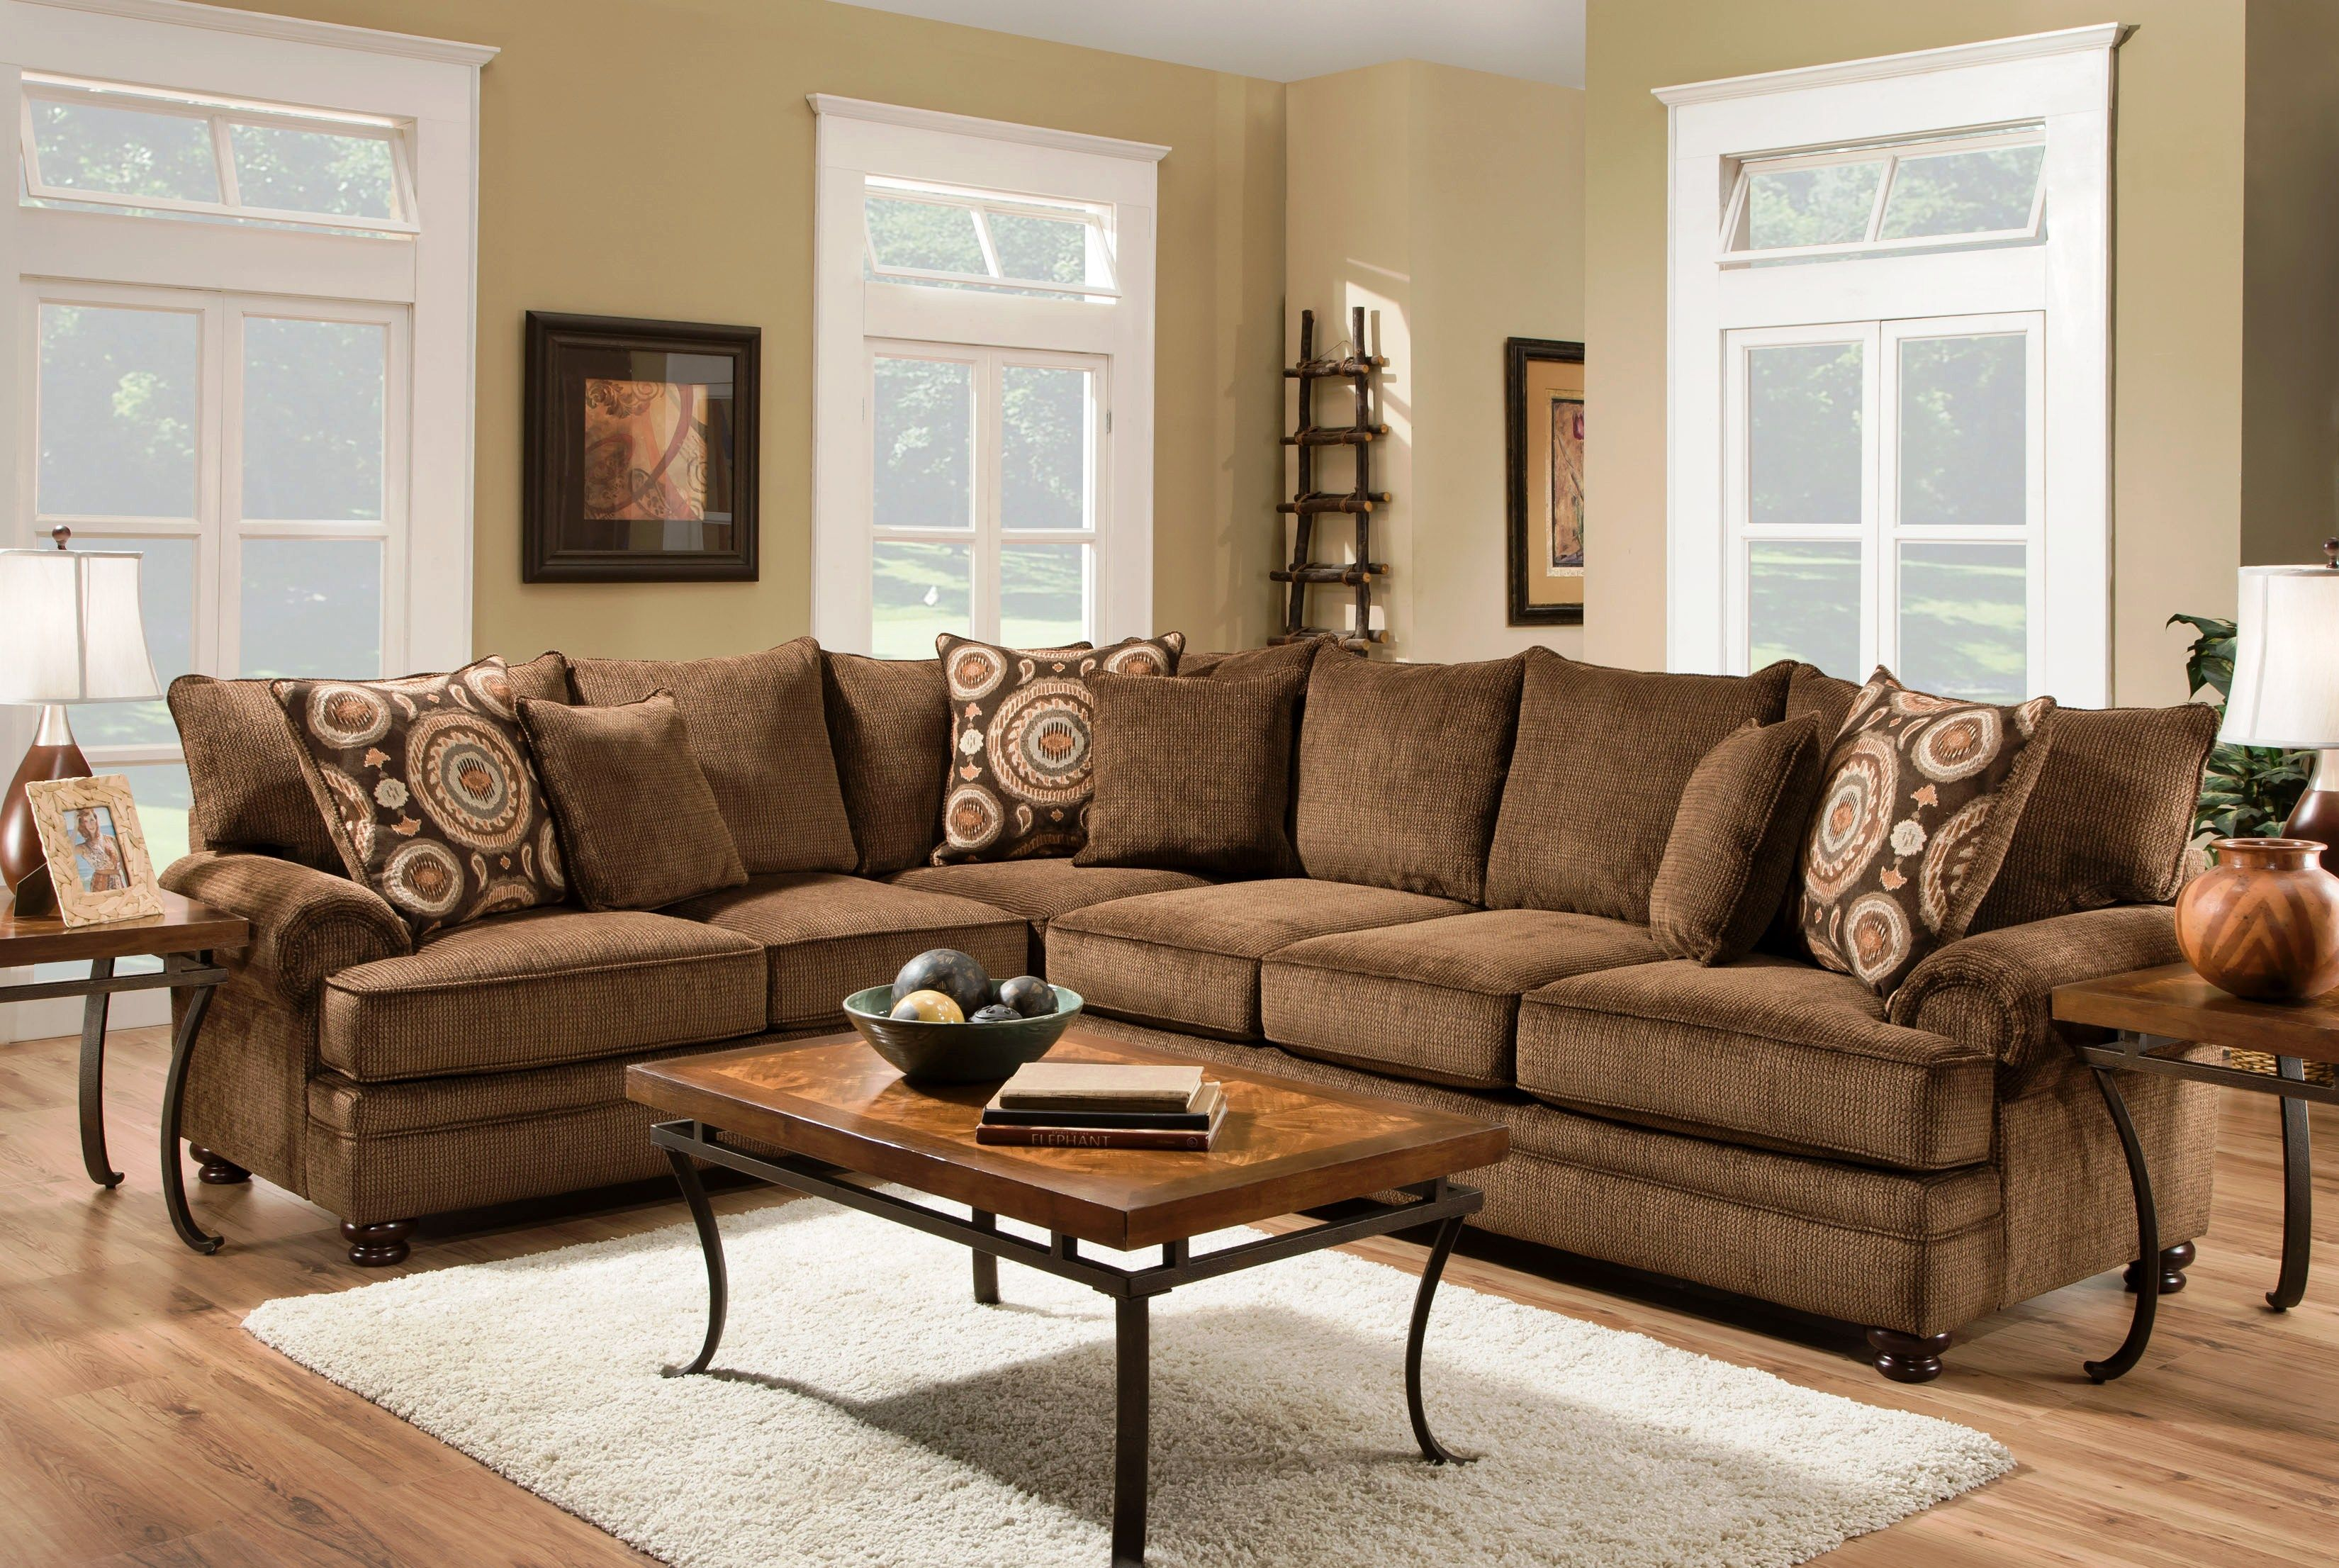 Ria Twill Chocolate Sumatra Chestnut 2Piece Sectional Chelsea